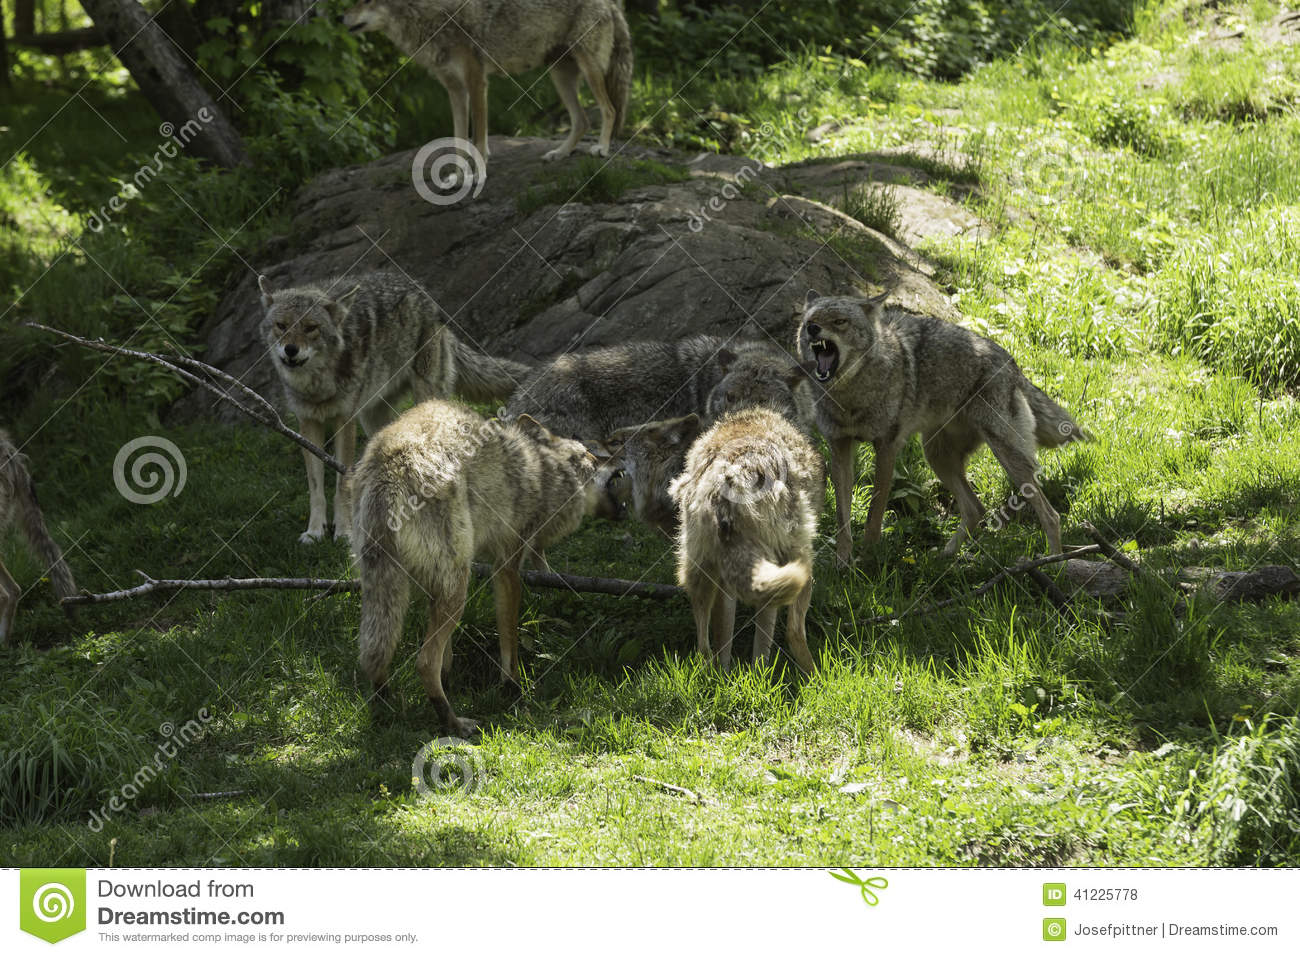 A pack of howling Coyotes